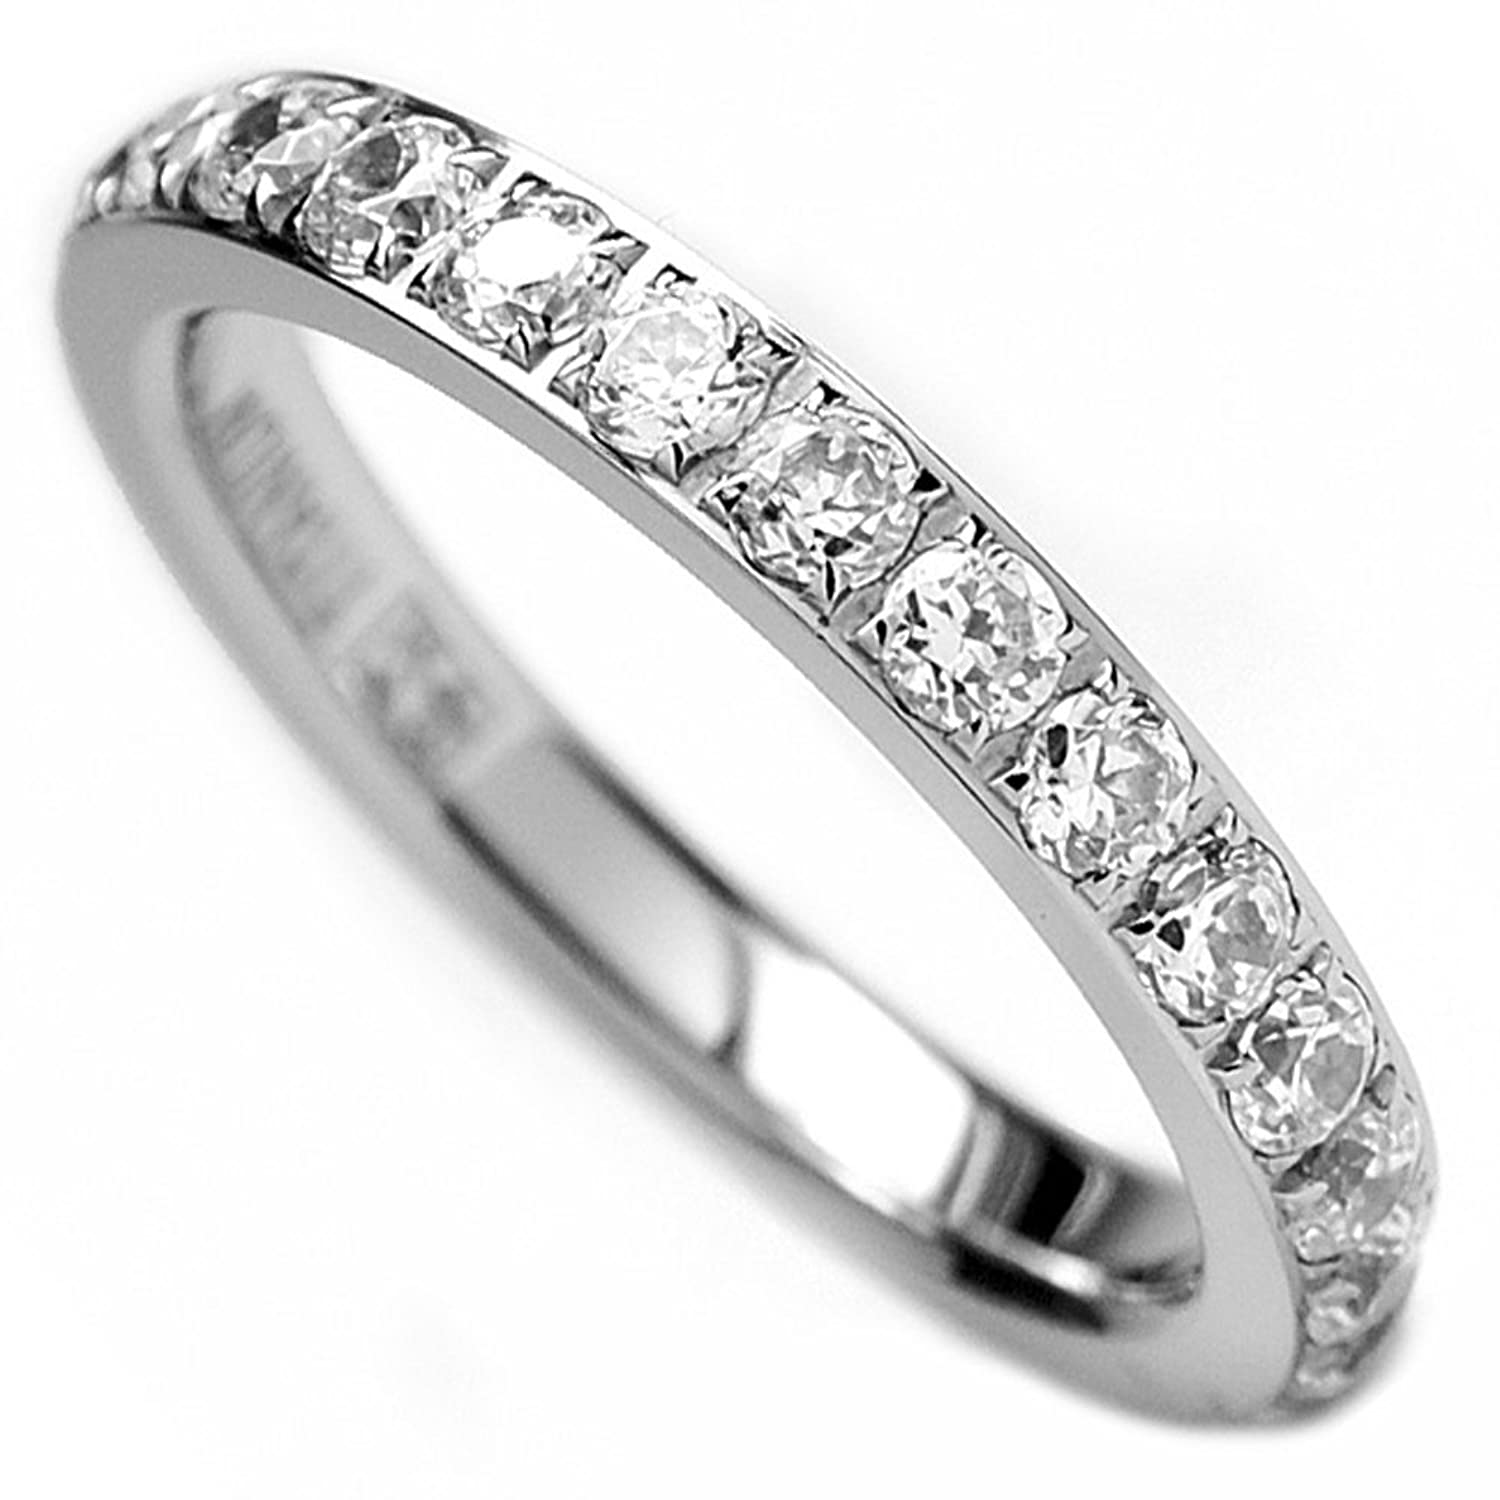 3MM La s Titanium Eternity Engagement Band Wedding Ring with